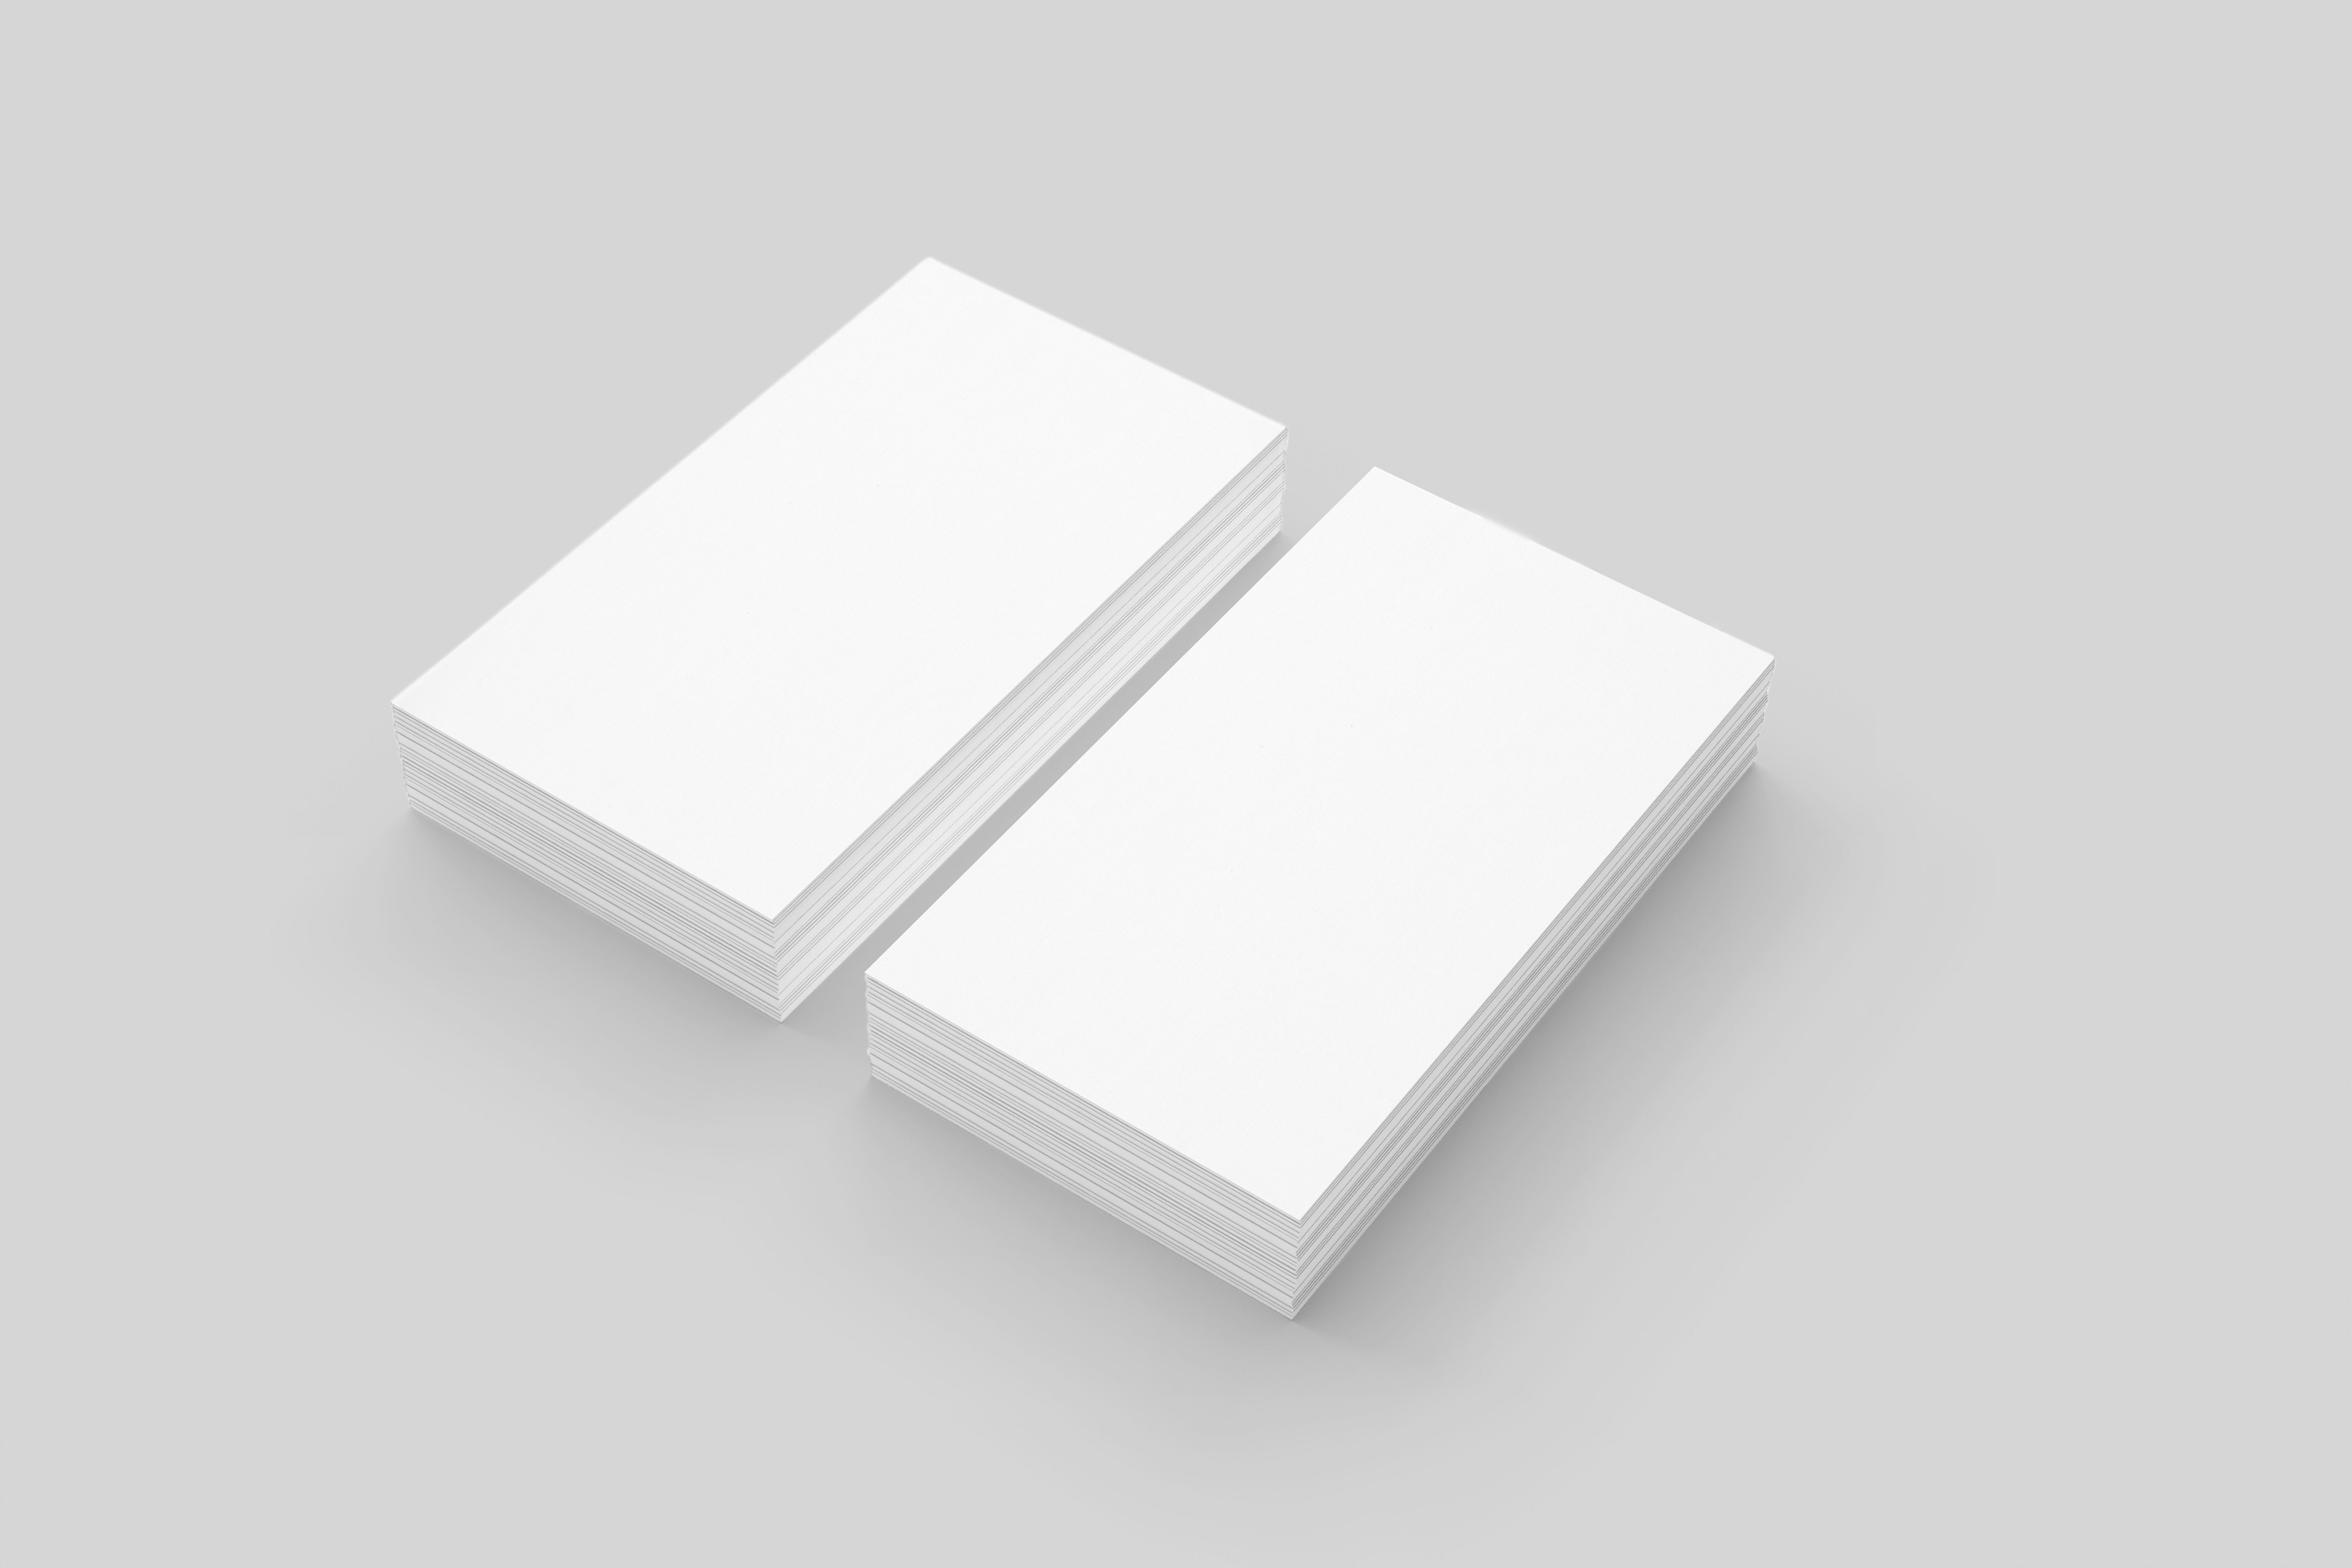 Business Cards : Free Mockup Templates : Pinterest : Business cards ...